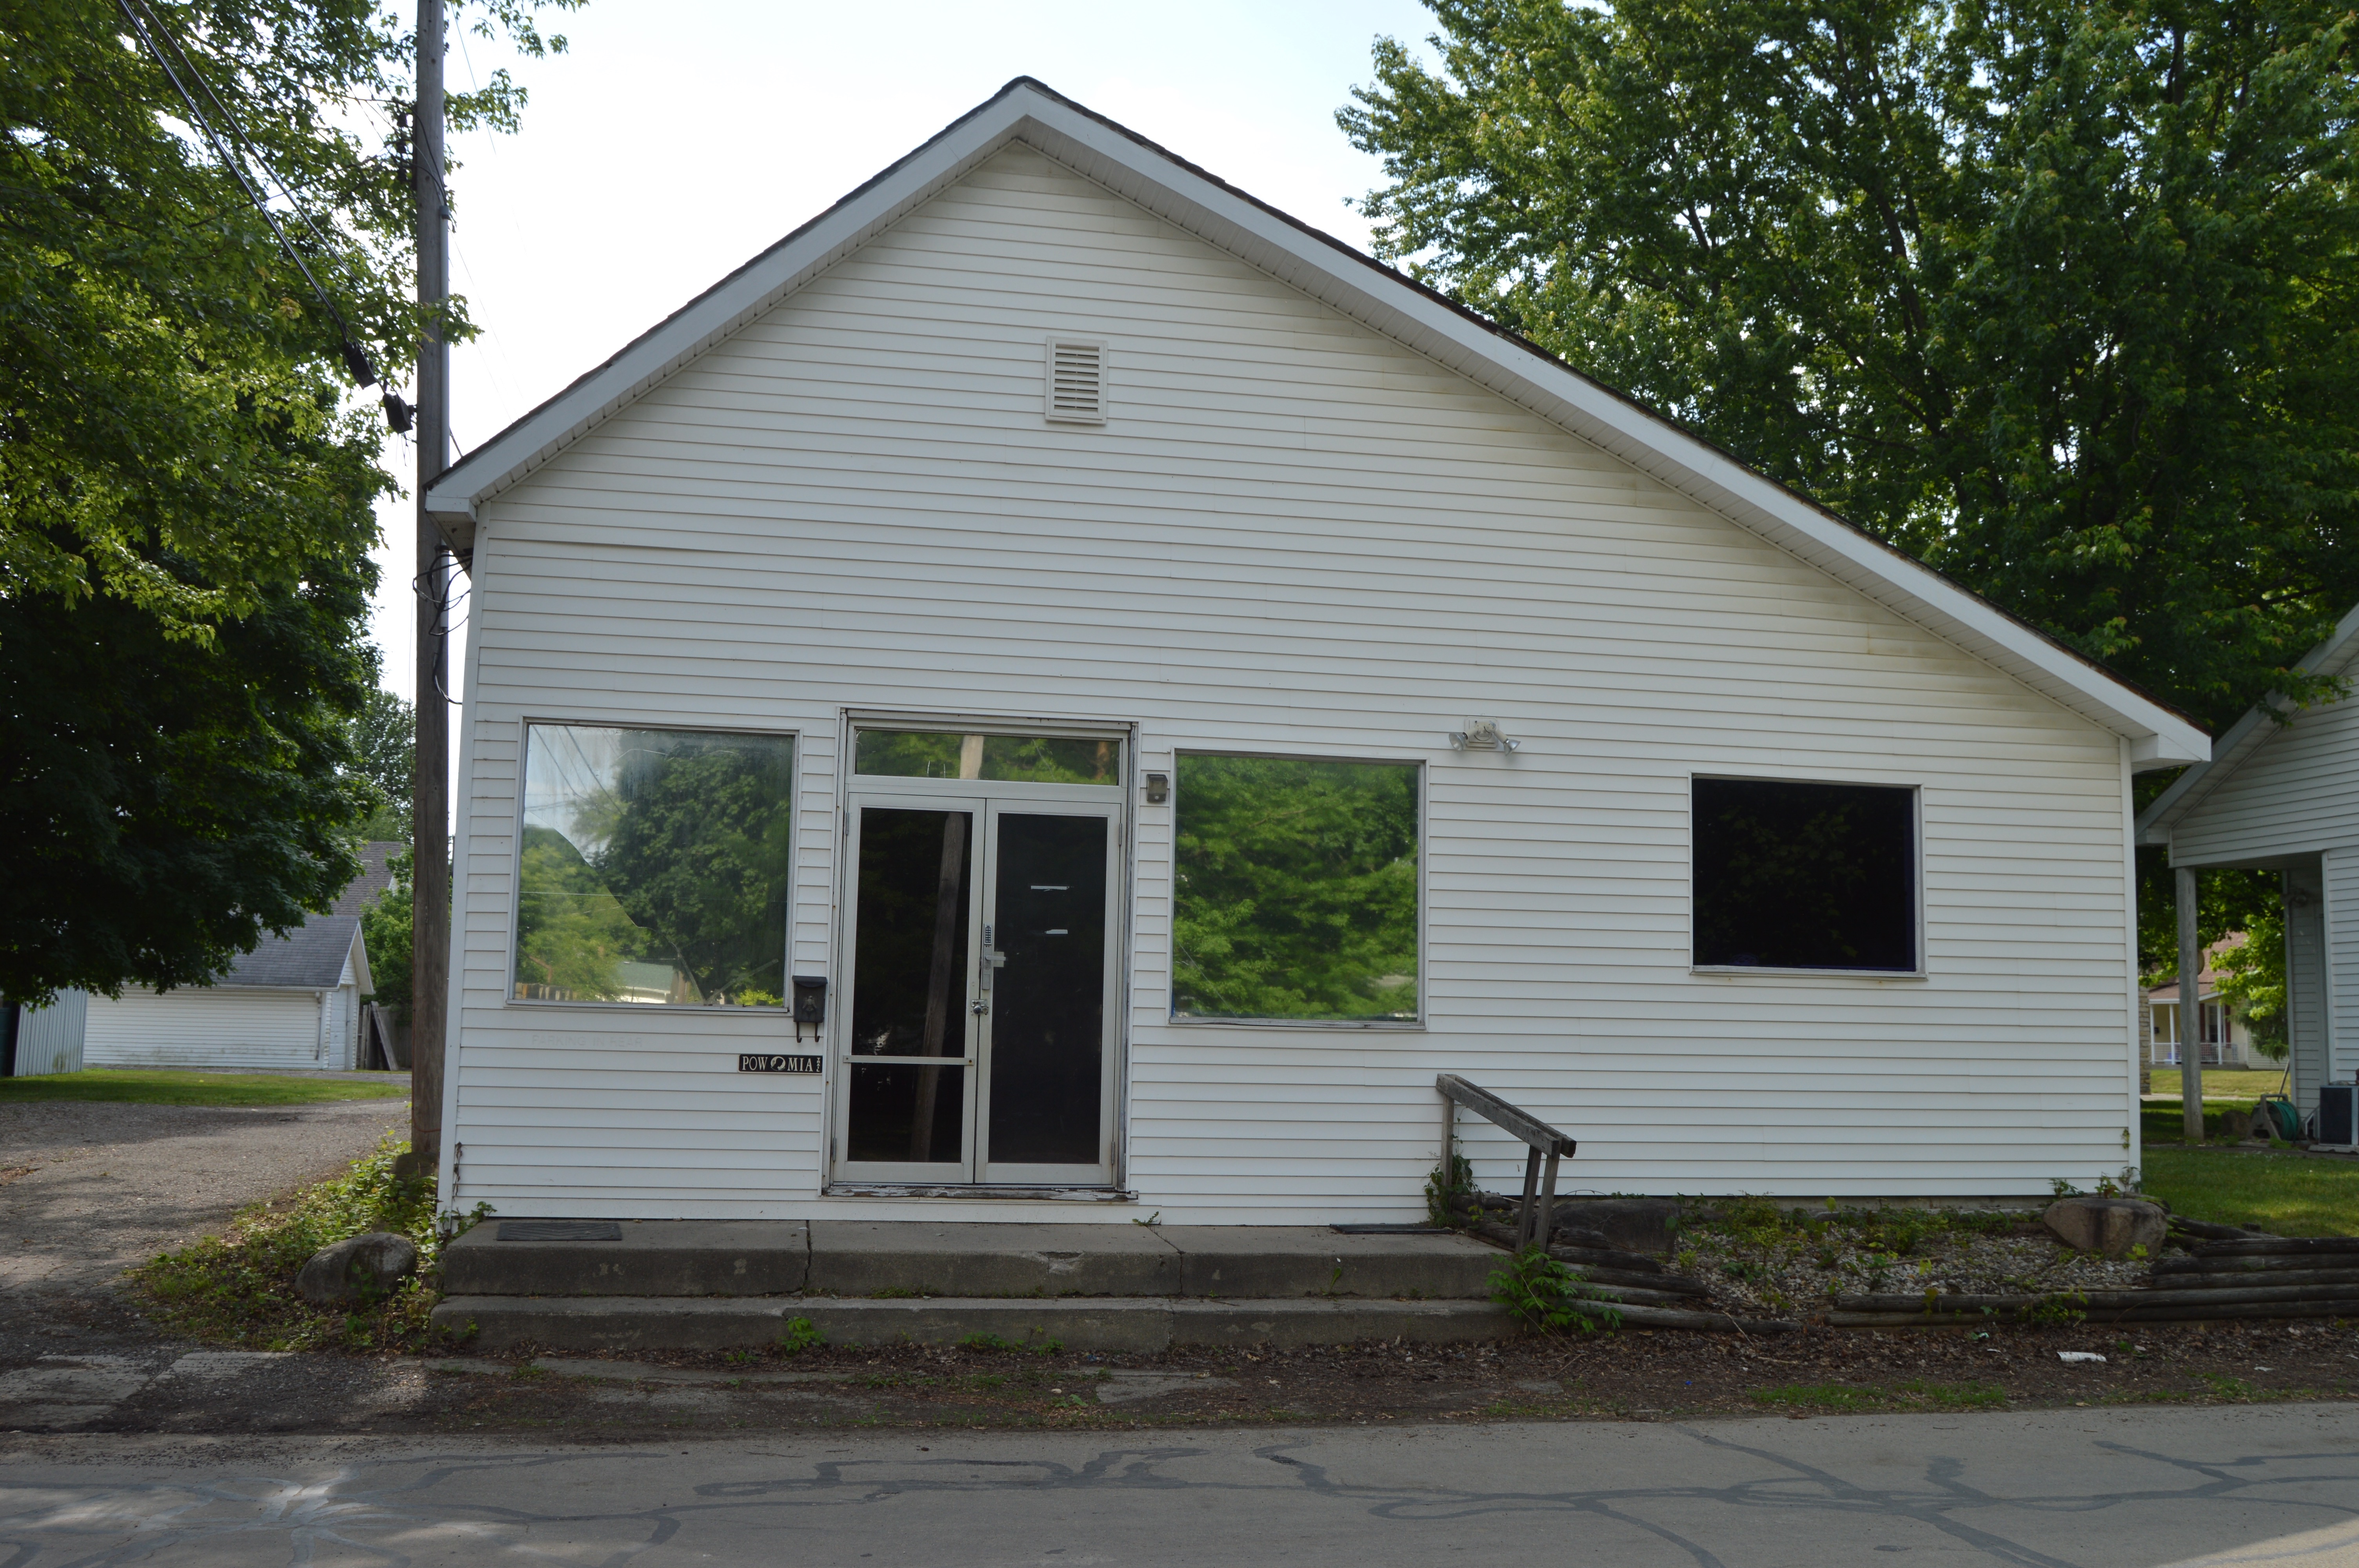 125 N 10th St, Middletown, IN